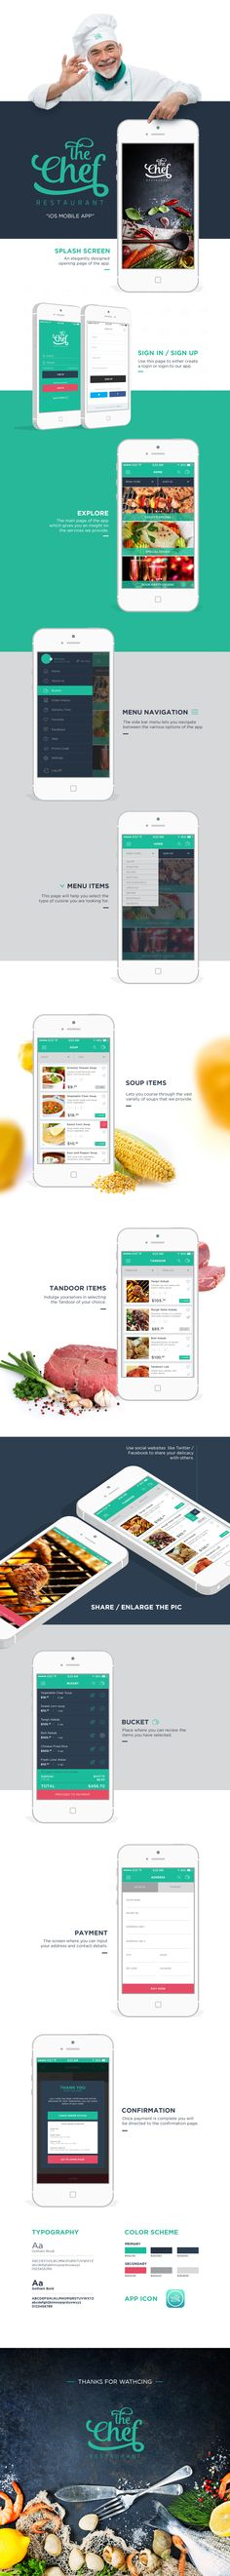 The Chef Restaurant iOS App on Behance Iphone App Design, App Ui Design, Interface Design, Identity Design, Mobile Application Design, Mobile Web Design, Restaurant App, Catalogue Layout, App Design Inspiration